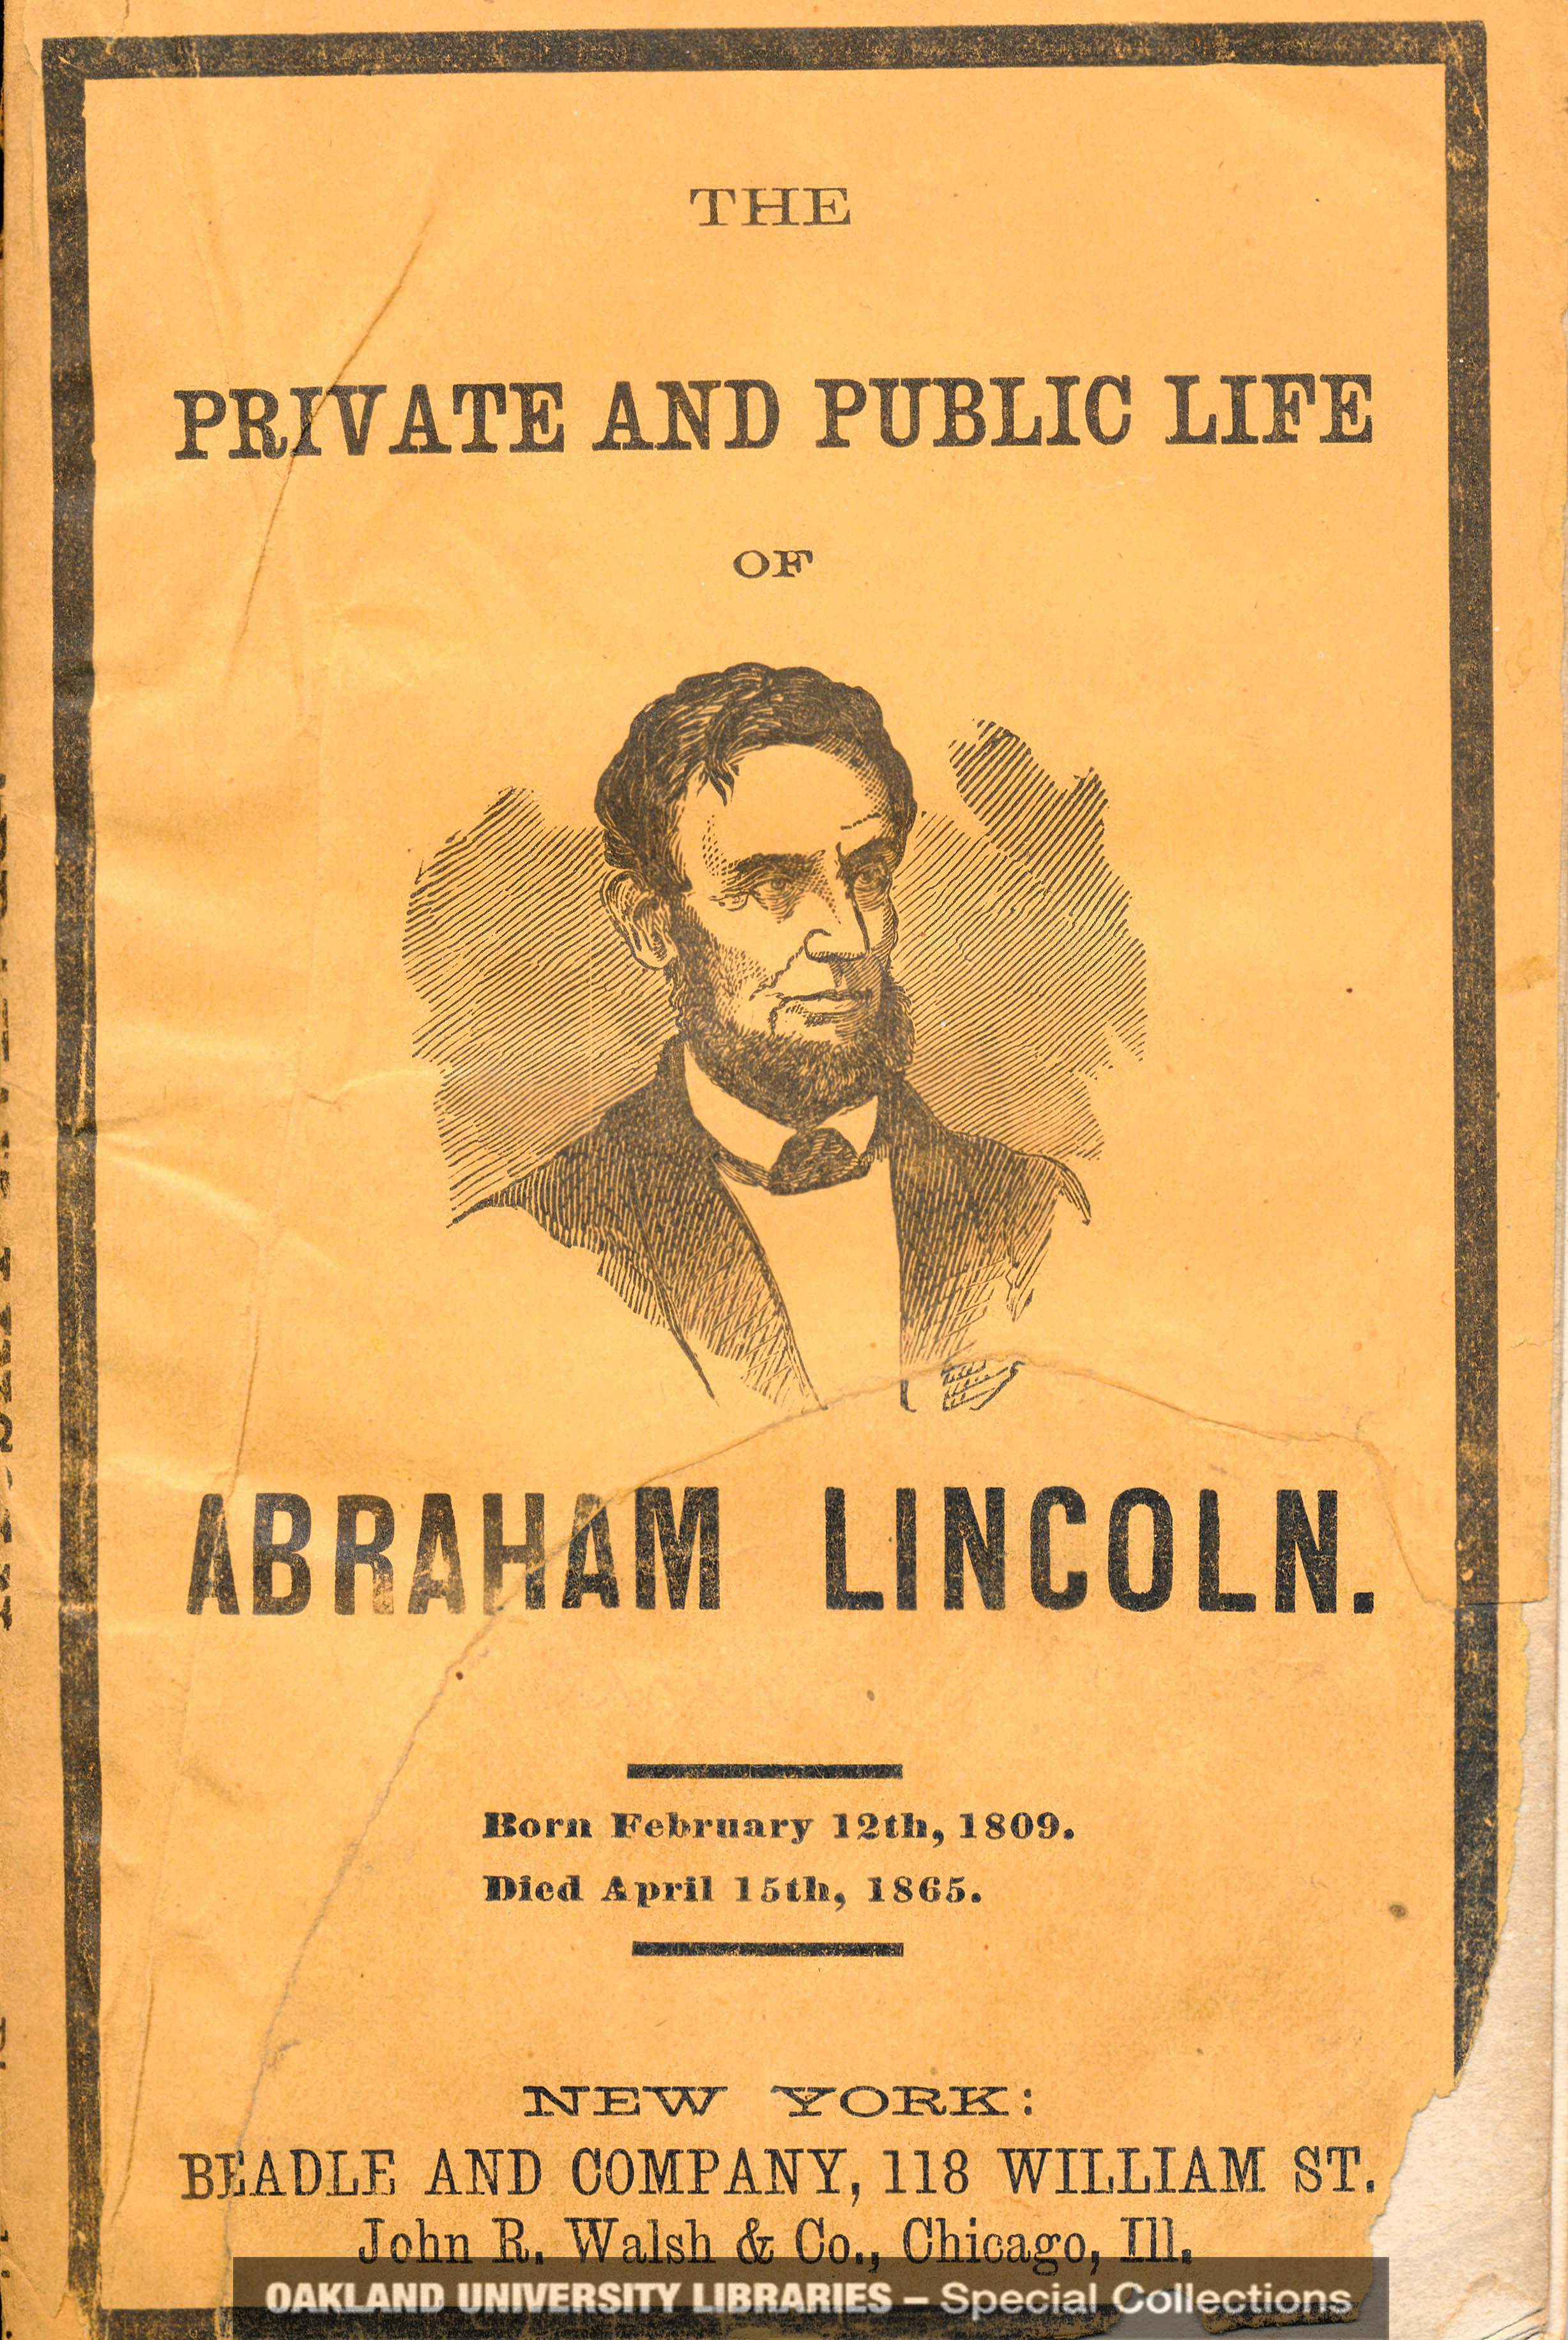 The Private and Public Life of Abraham Lincoln, by O. J. Victor